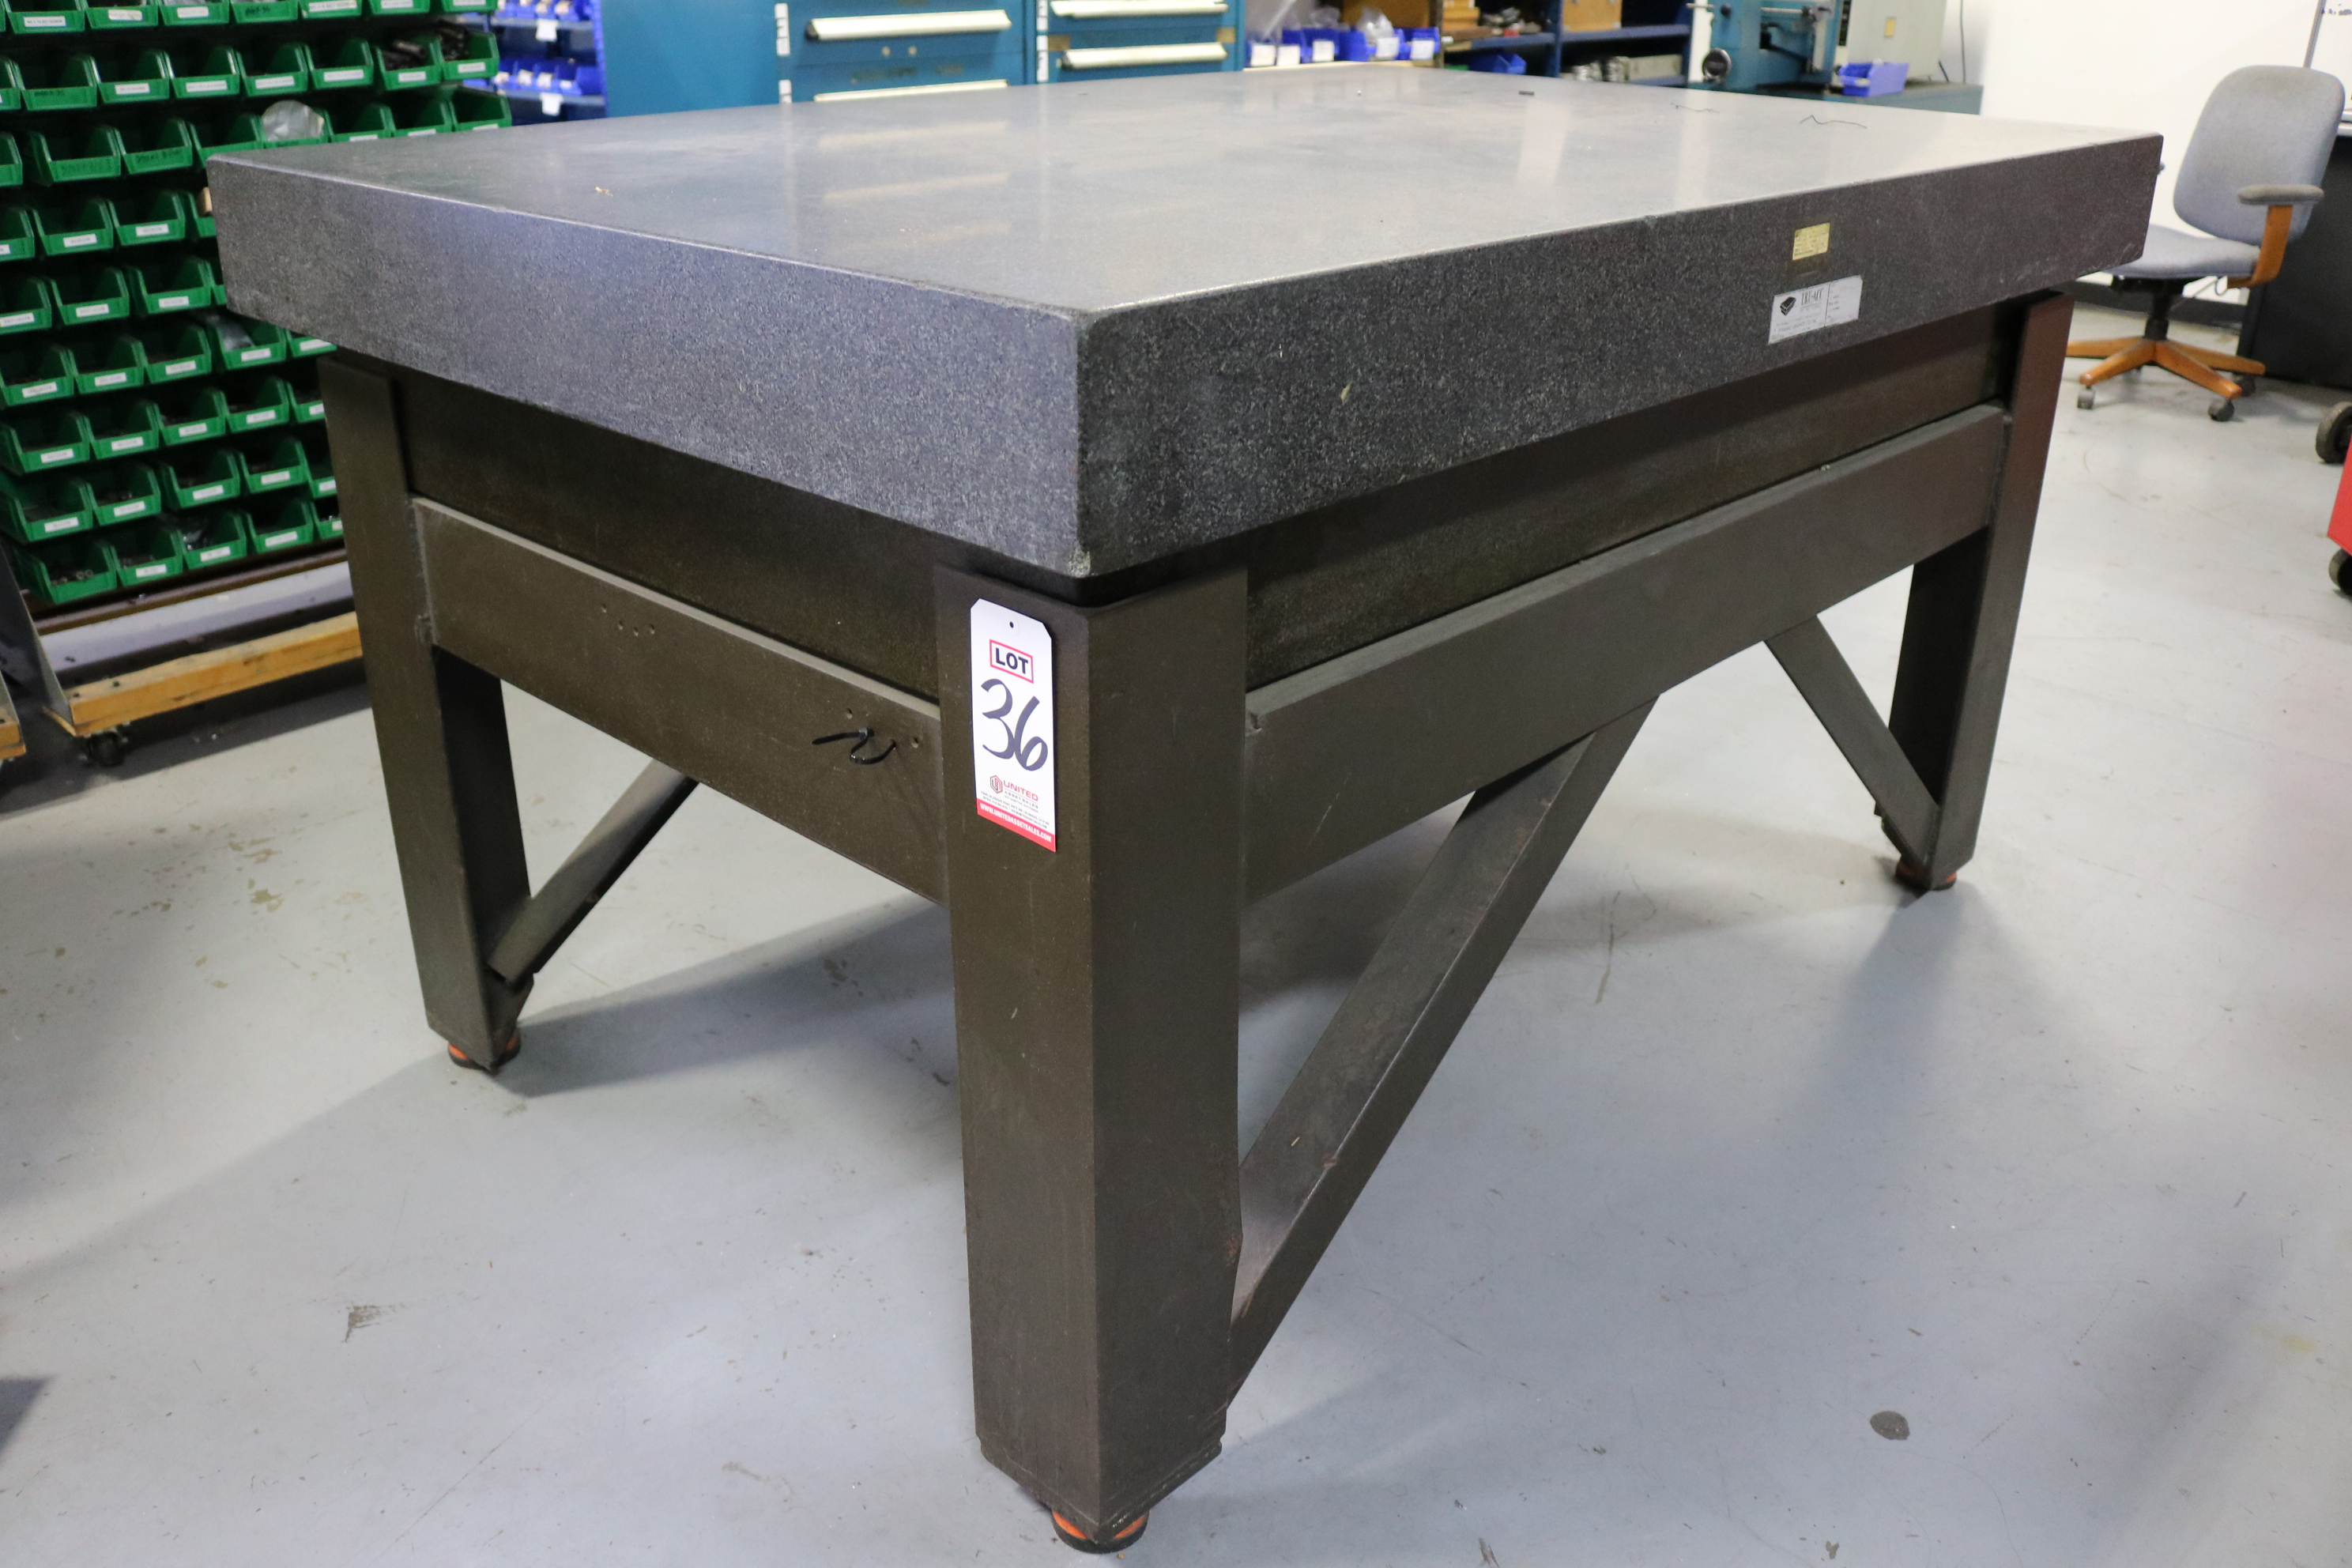 "Lot 36 - MICRO-FLAT GRANITE SURFACE PLATE, 6' X 4' X 6"", STEEL METAL TABLE"